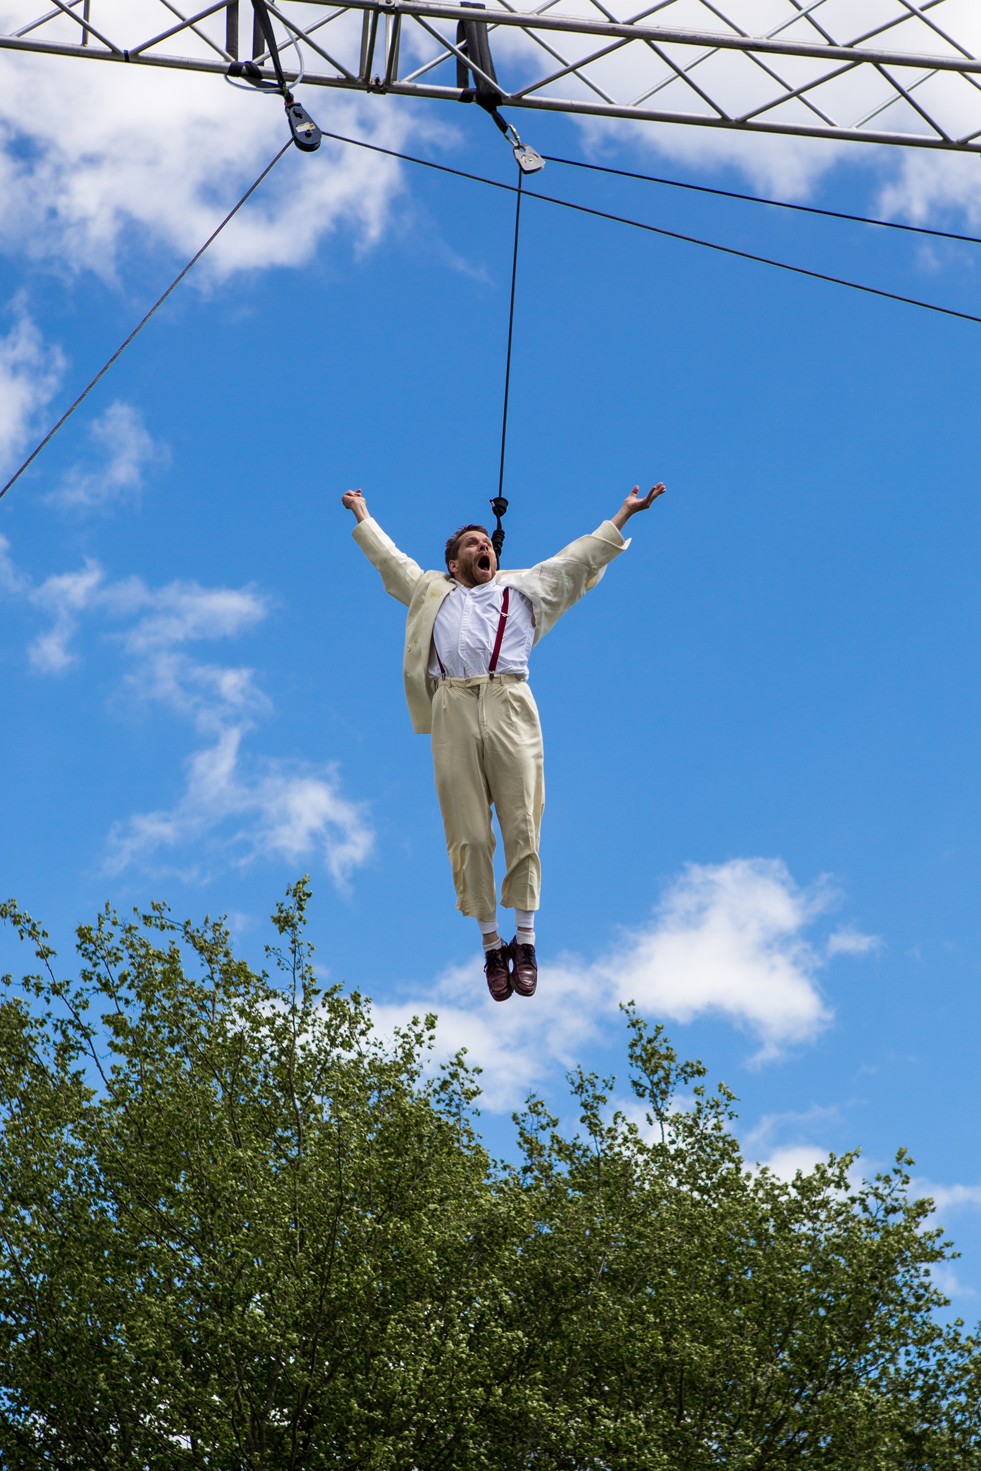 Jamie flies on a harness, his arms outstretched in joy, a bright blue sky behind him.